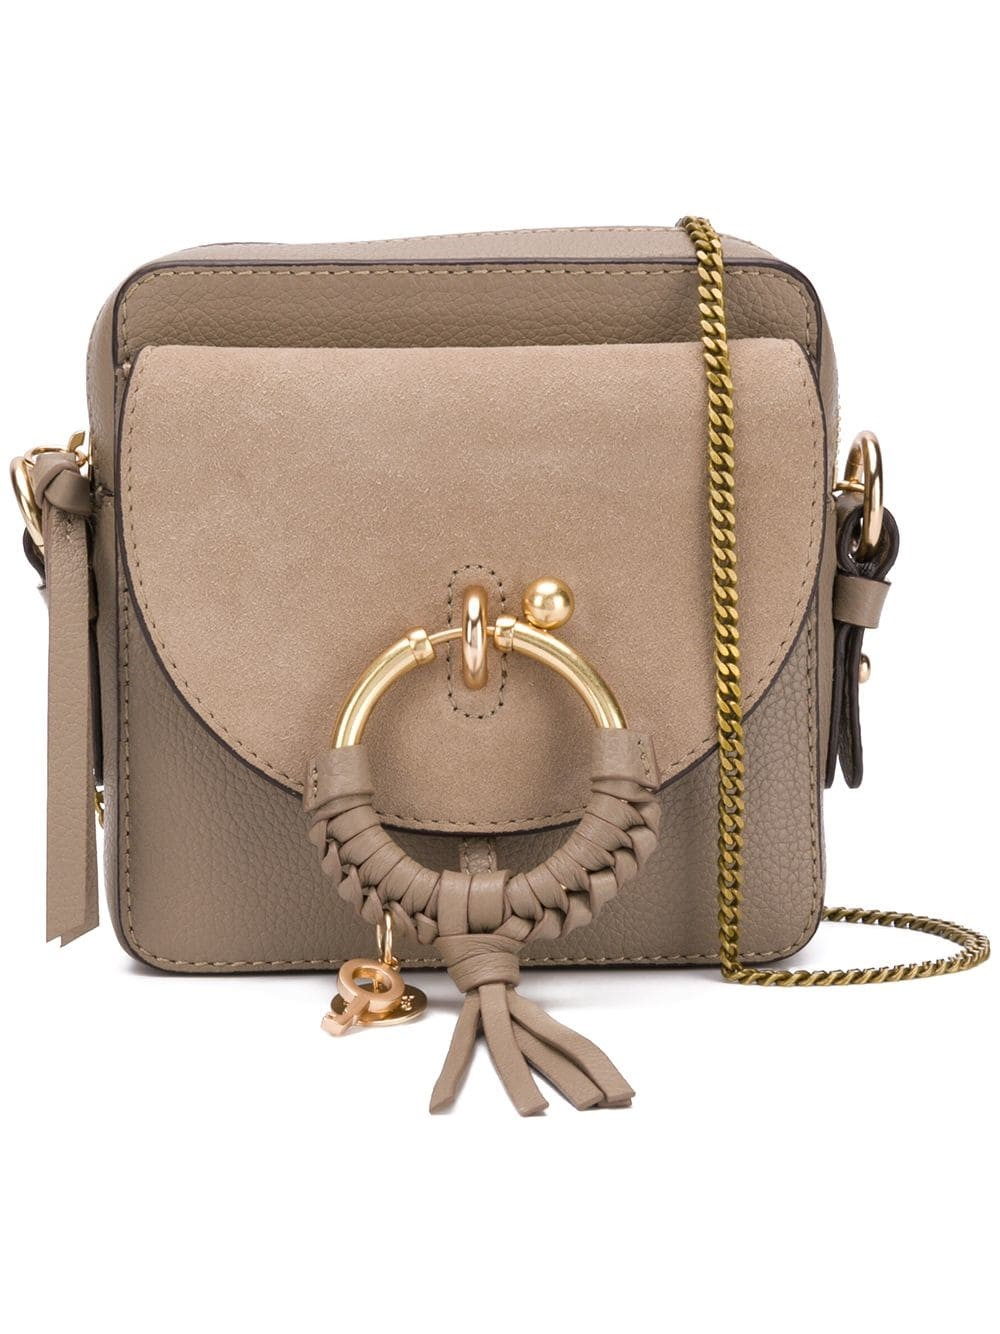 9f8acb1f49c see by chloe` SHOULDER BAG available on montiboutique.com - 26131